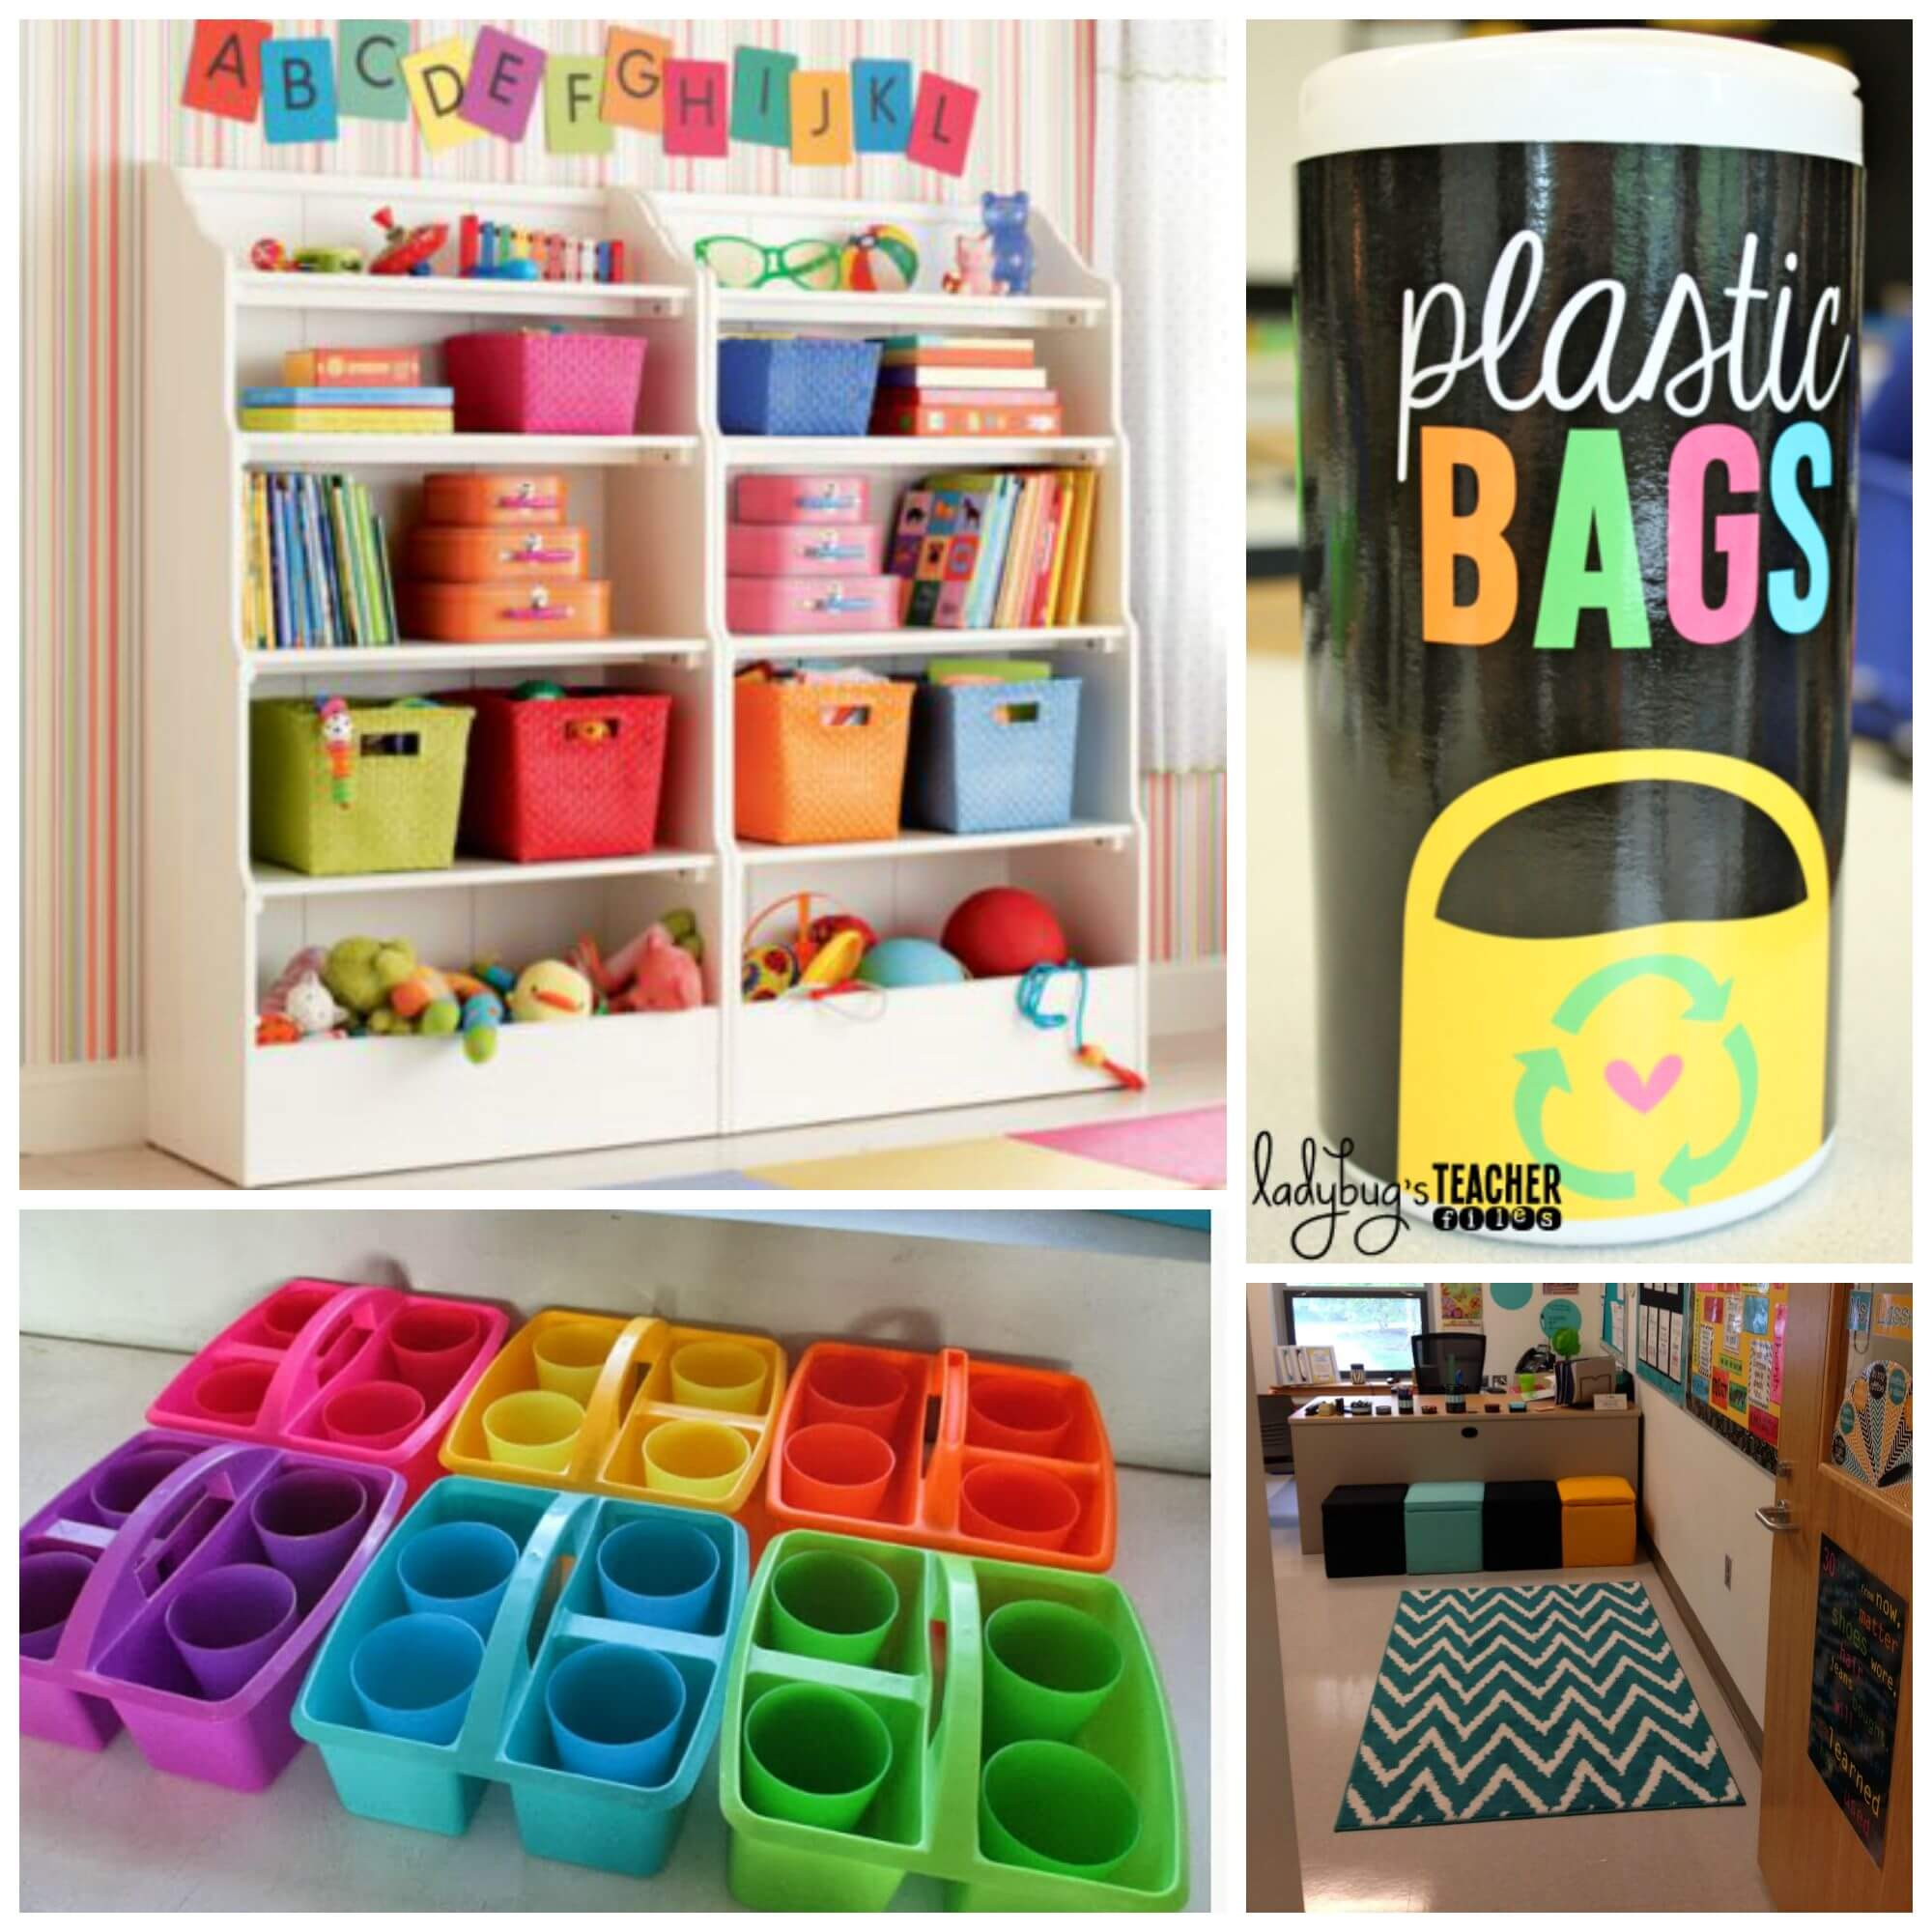 Classroom Ornament Ideas ~ Inspiring classroom decoration ideas playdough to plato